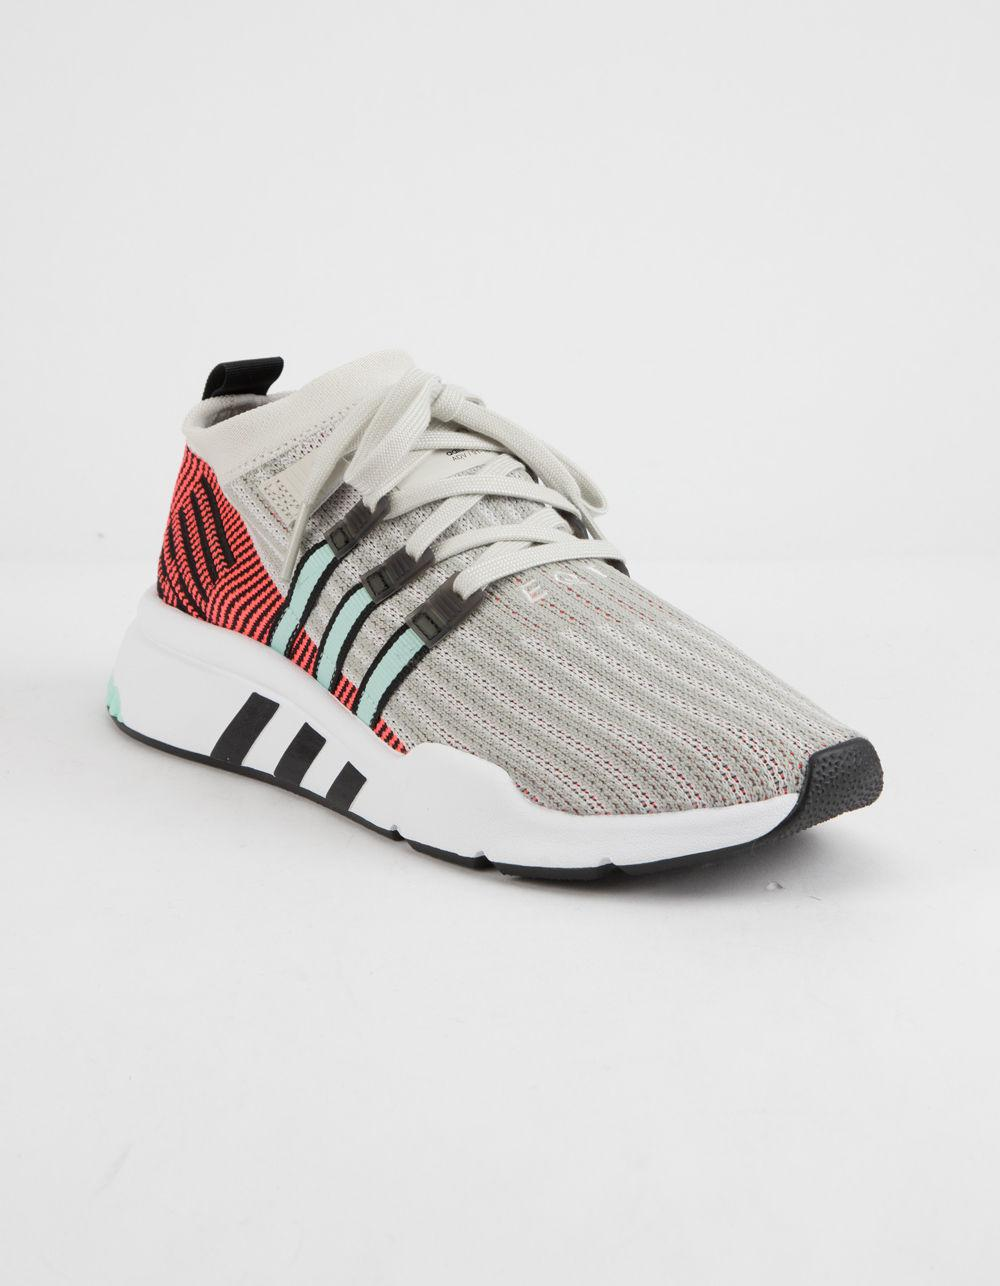 promo code c9b30 1e730 Lyst - Adidas Eqt Support Mid Adv Primeknit Shoes in Gray